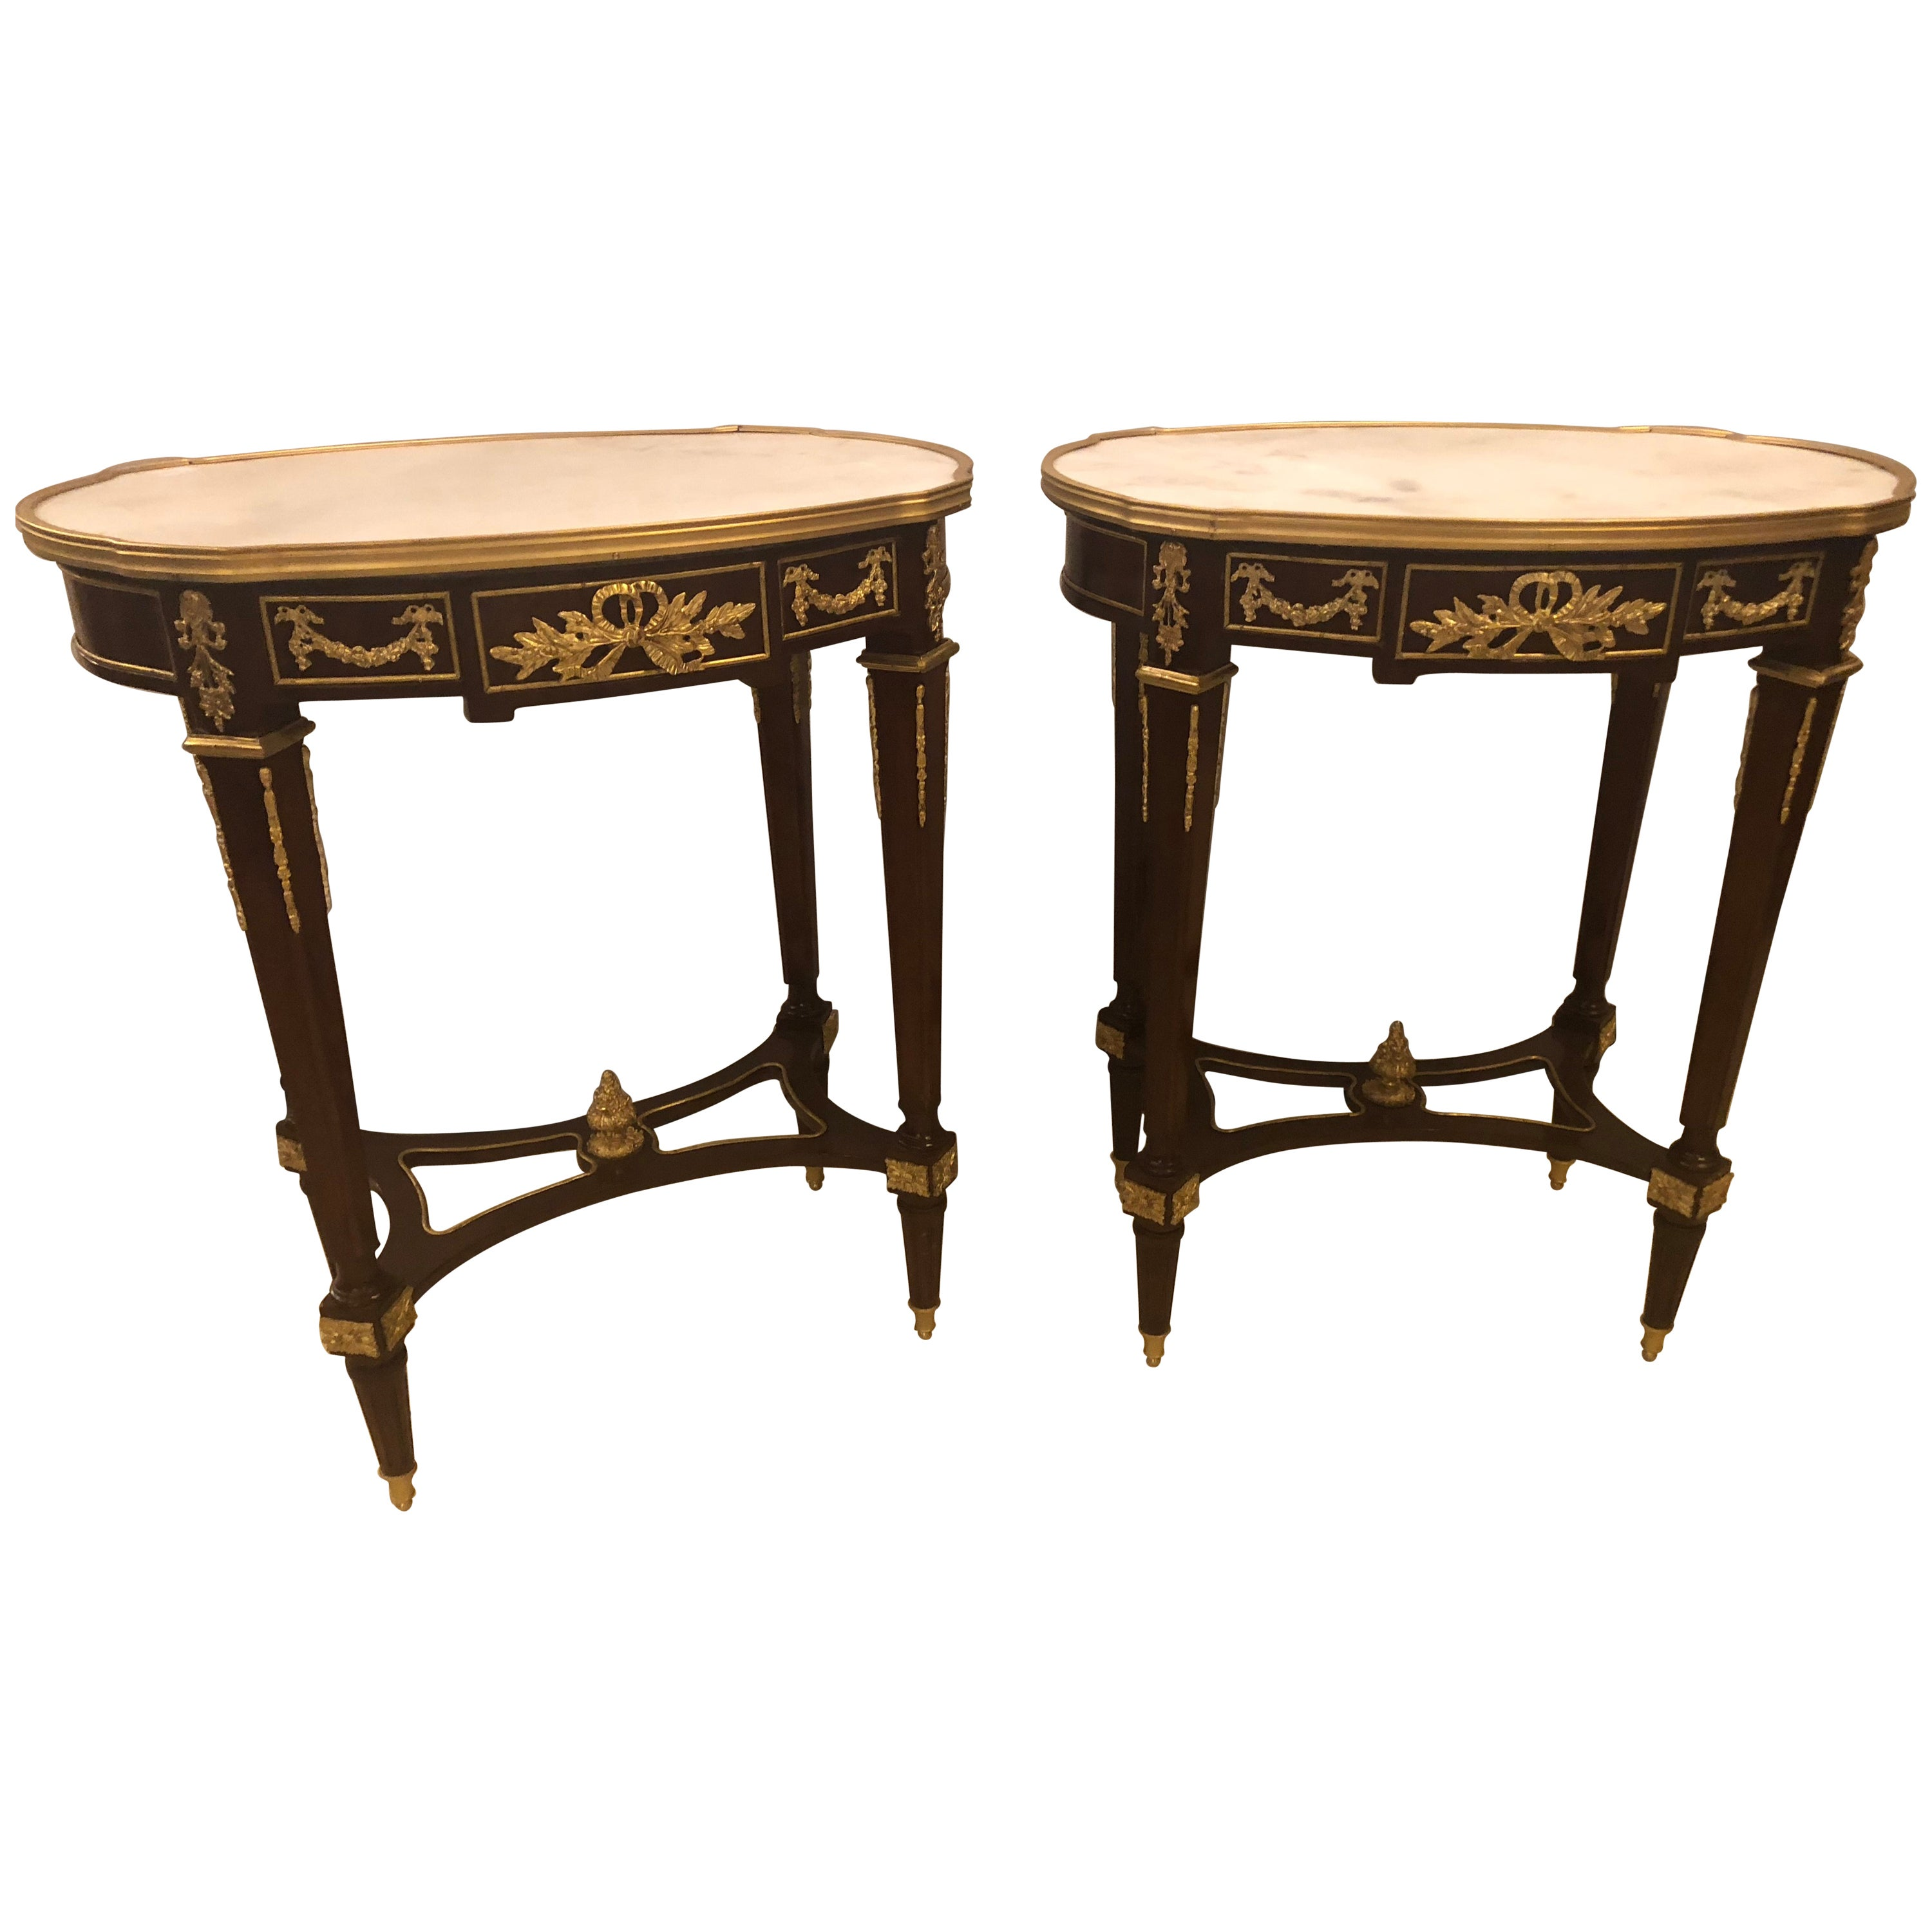 Louis XVI Style Bronze Framed Marble-Top End Lamp Tables with Bronze Mounts Pair